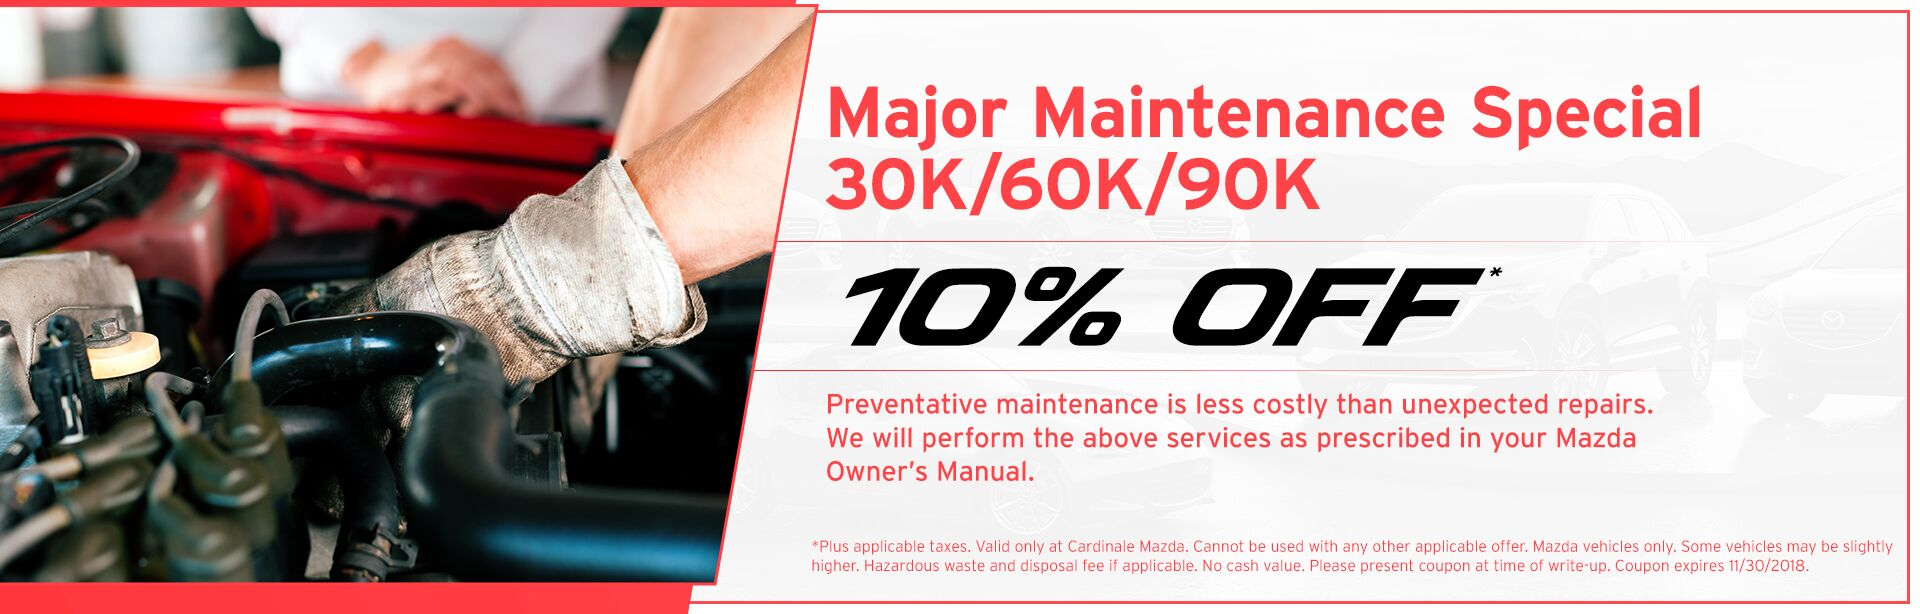 Major Maintenance Special 30k/60k/90k